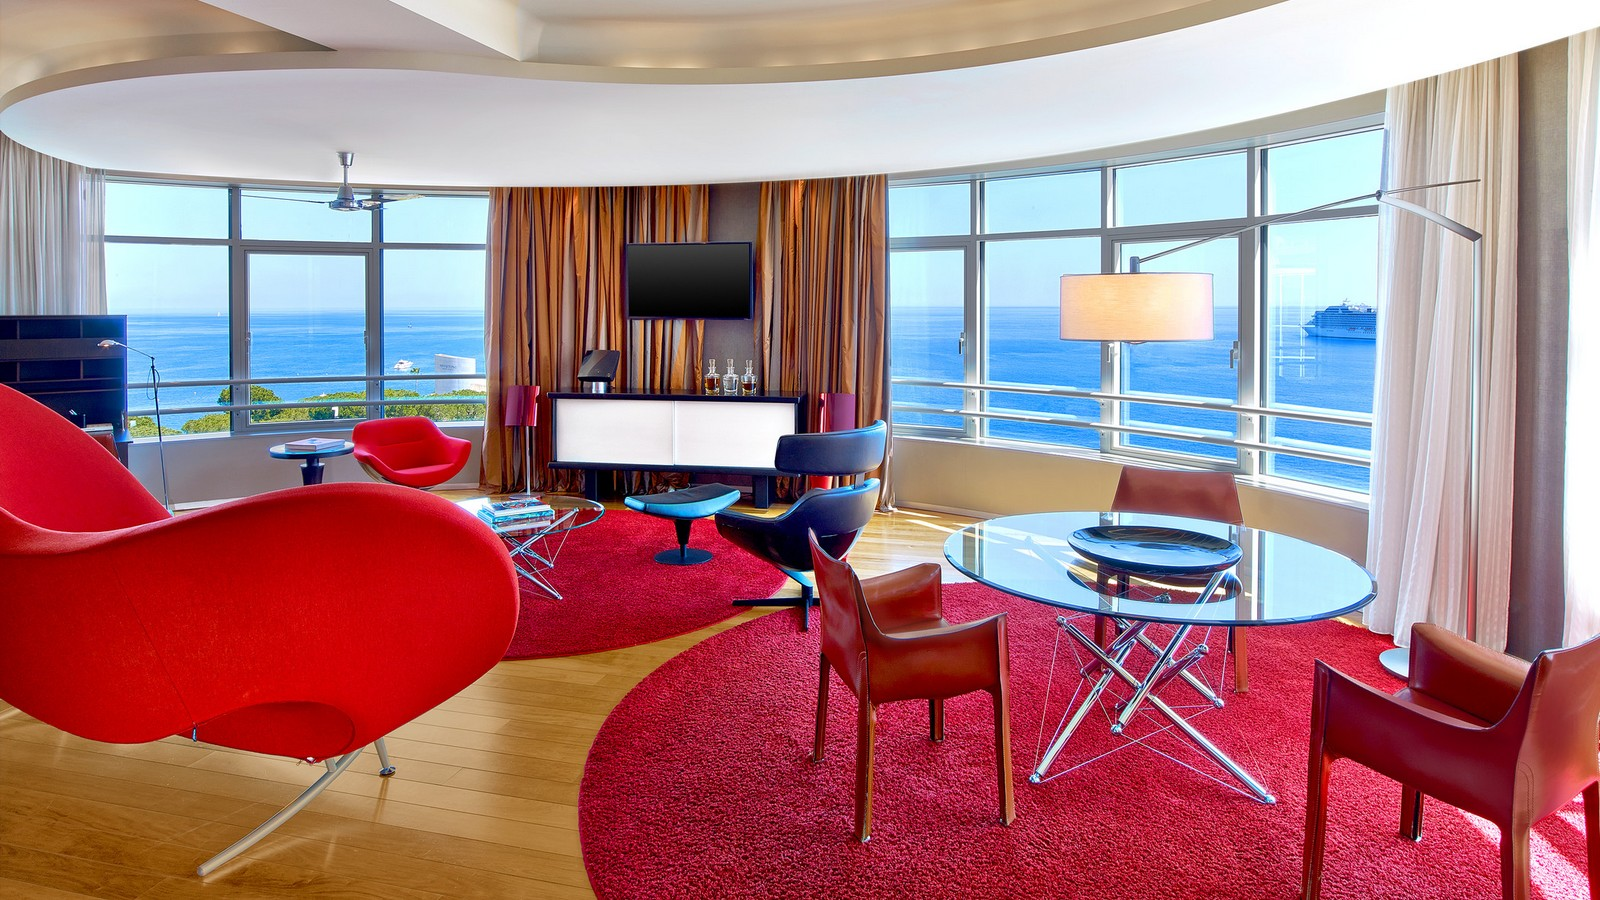 Presidential Suite - Sea View in Le Meridien Beach Plaza